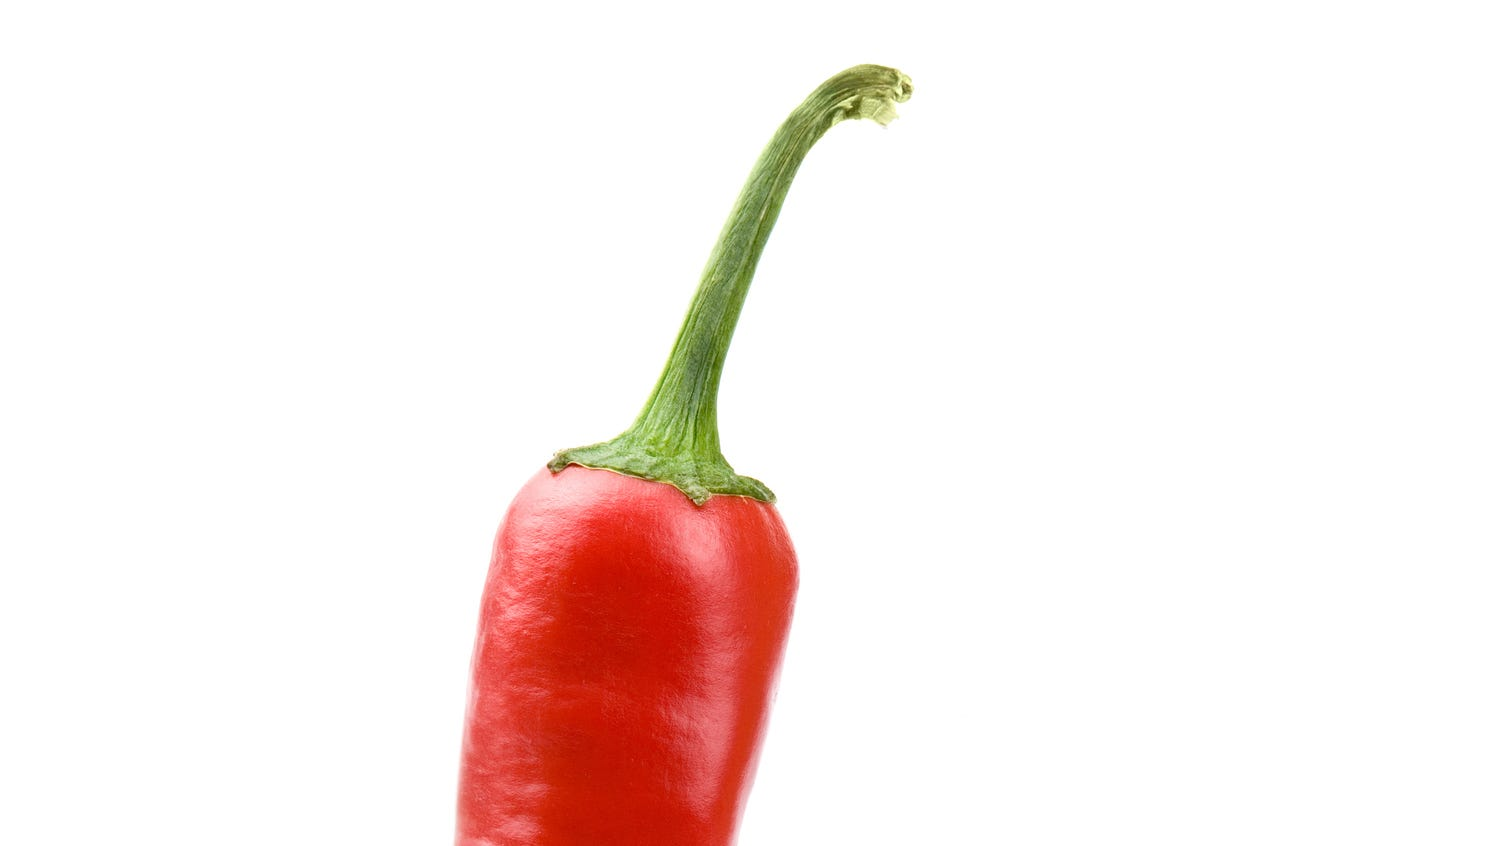 Chile peppers from Hatch, New Mexico, arrived at the station in June as a part of an experiment initiated by astronaut Shane Kimbrough, NASA said. �